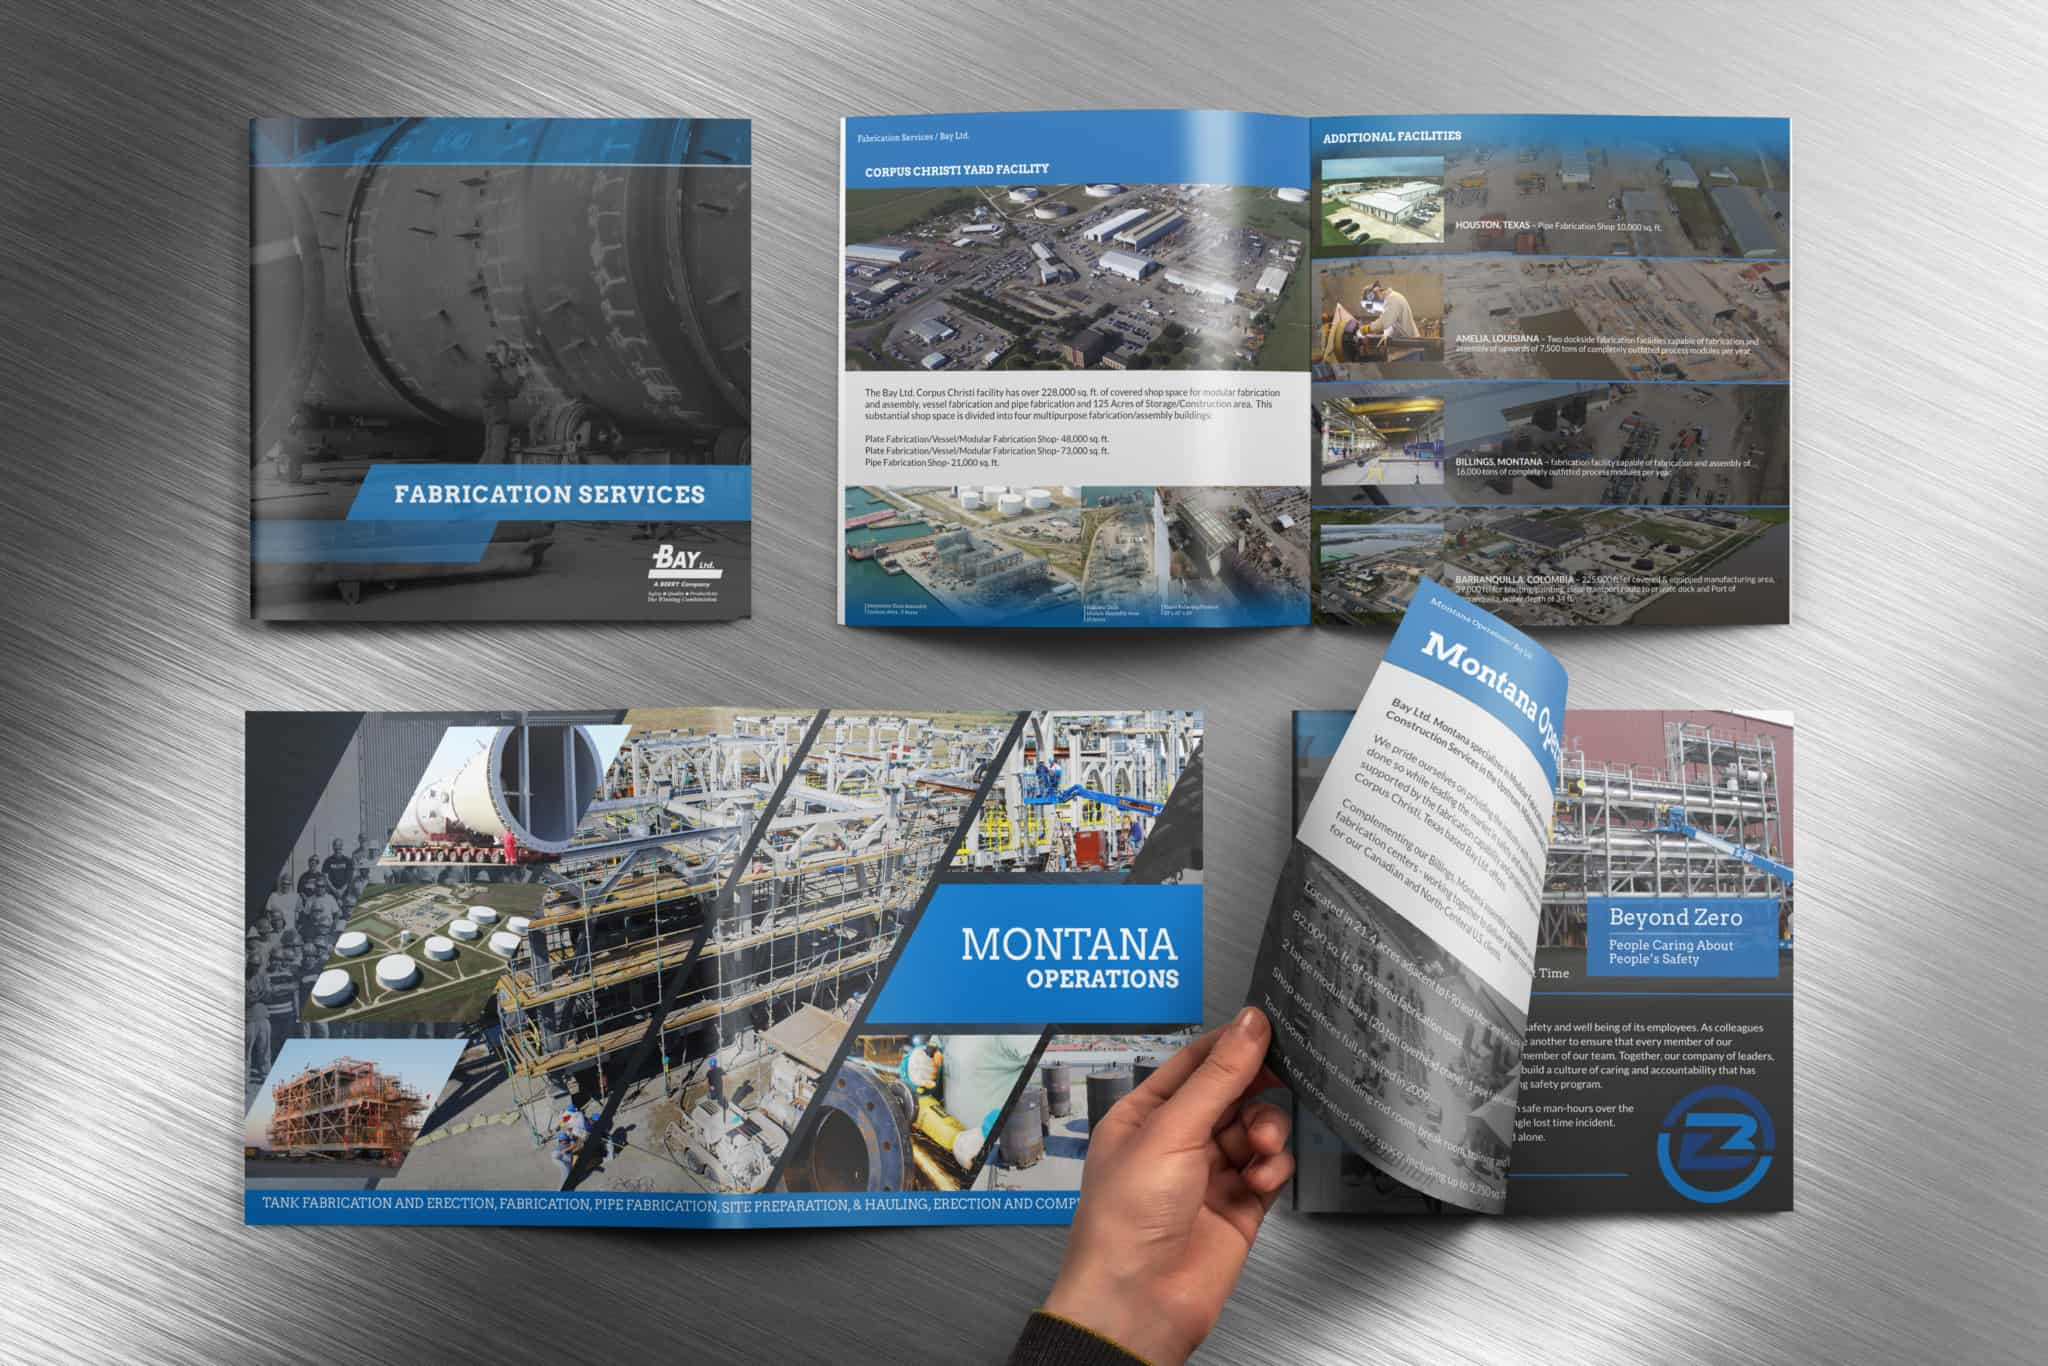 Bay Ltd. Fabrication Services and Montana Operations Brochures